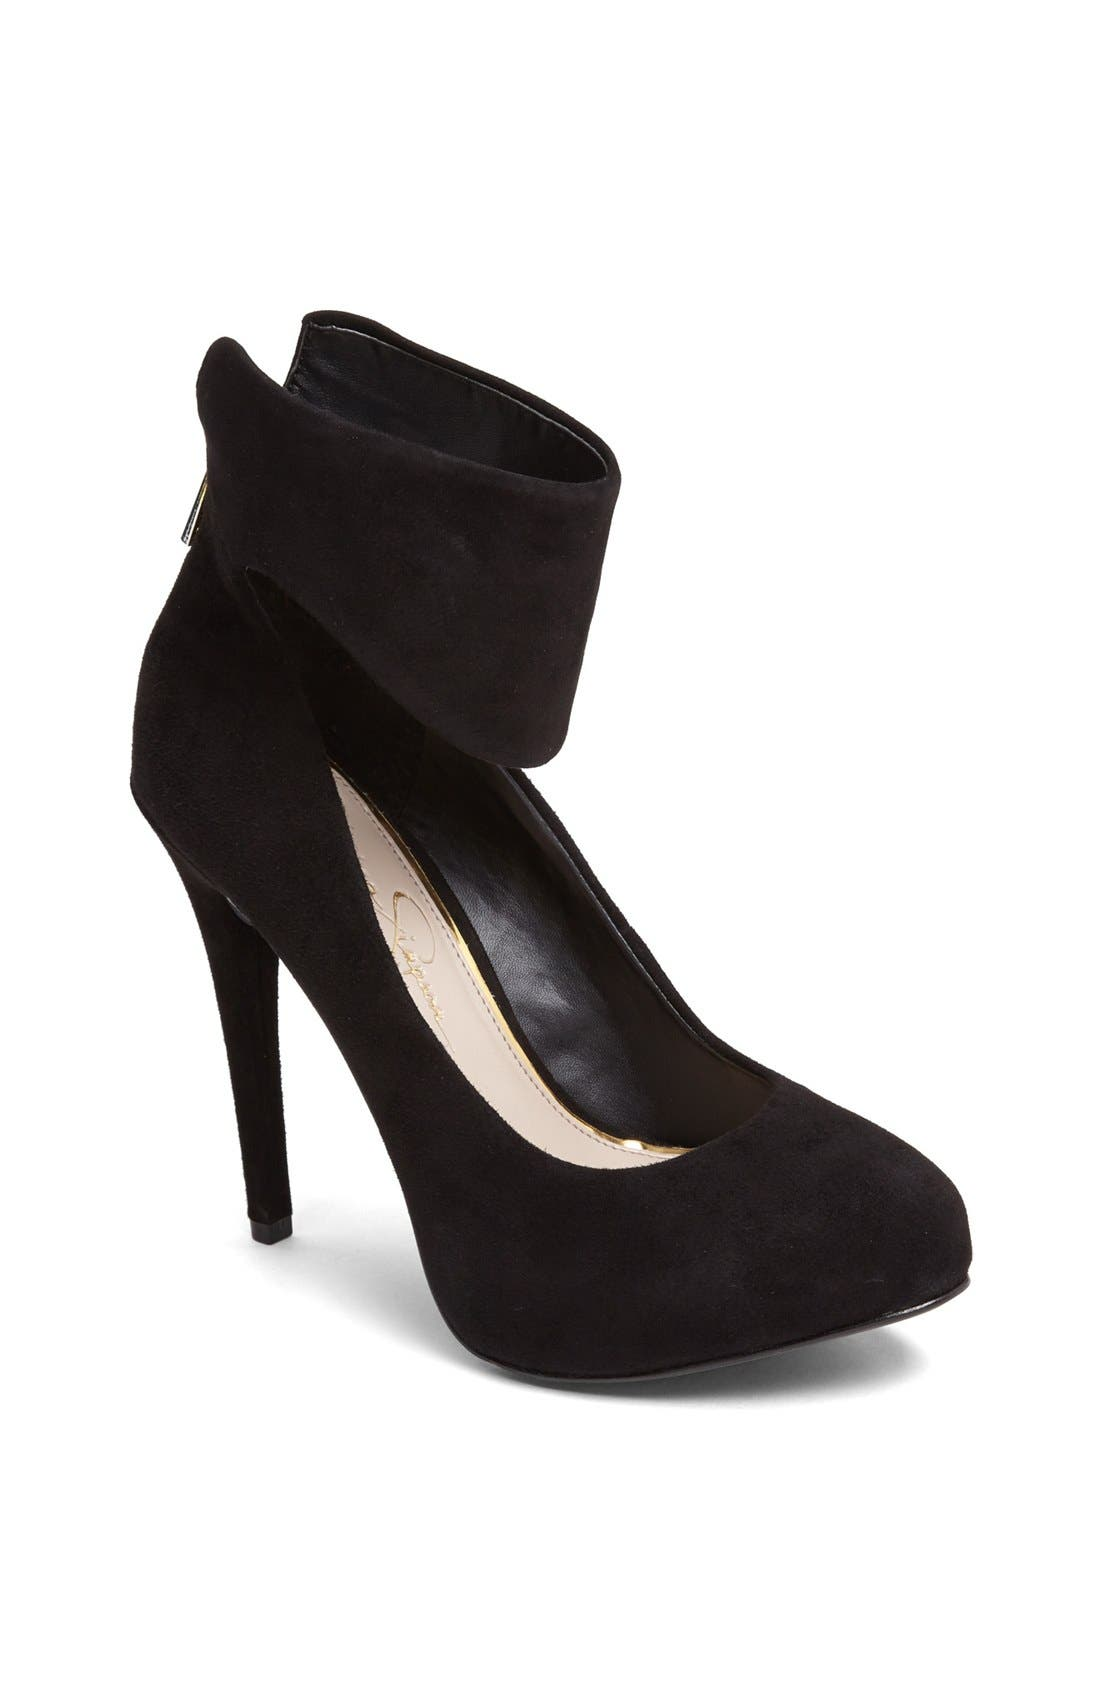 Alternate Image 1 Selected - Jessica Simpson 'Nwing' Pump